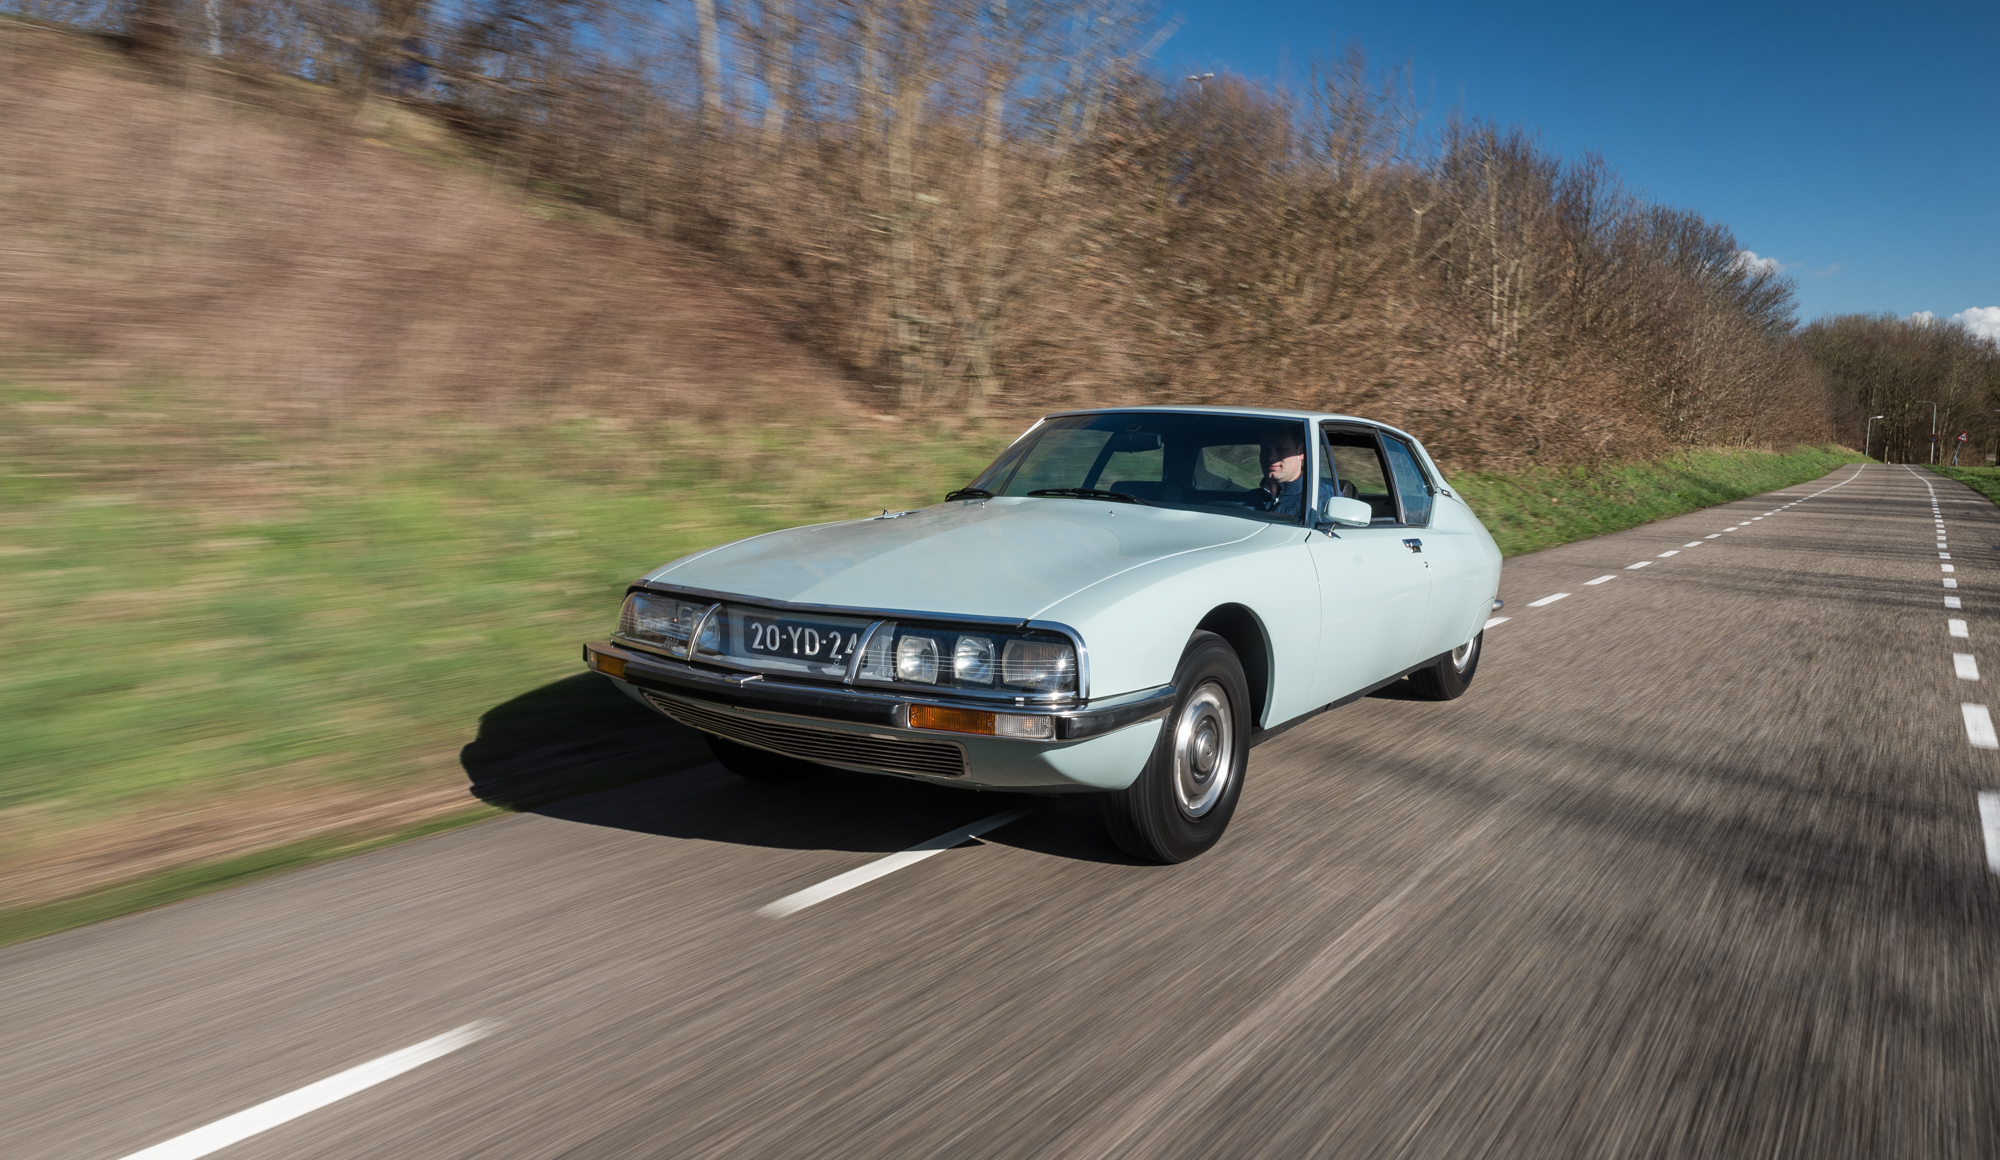 1973 CITROEN SM SPORT MASERATI For Sale (picture 2 of 6)